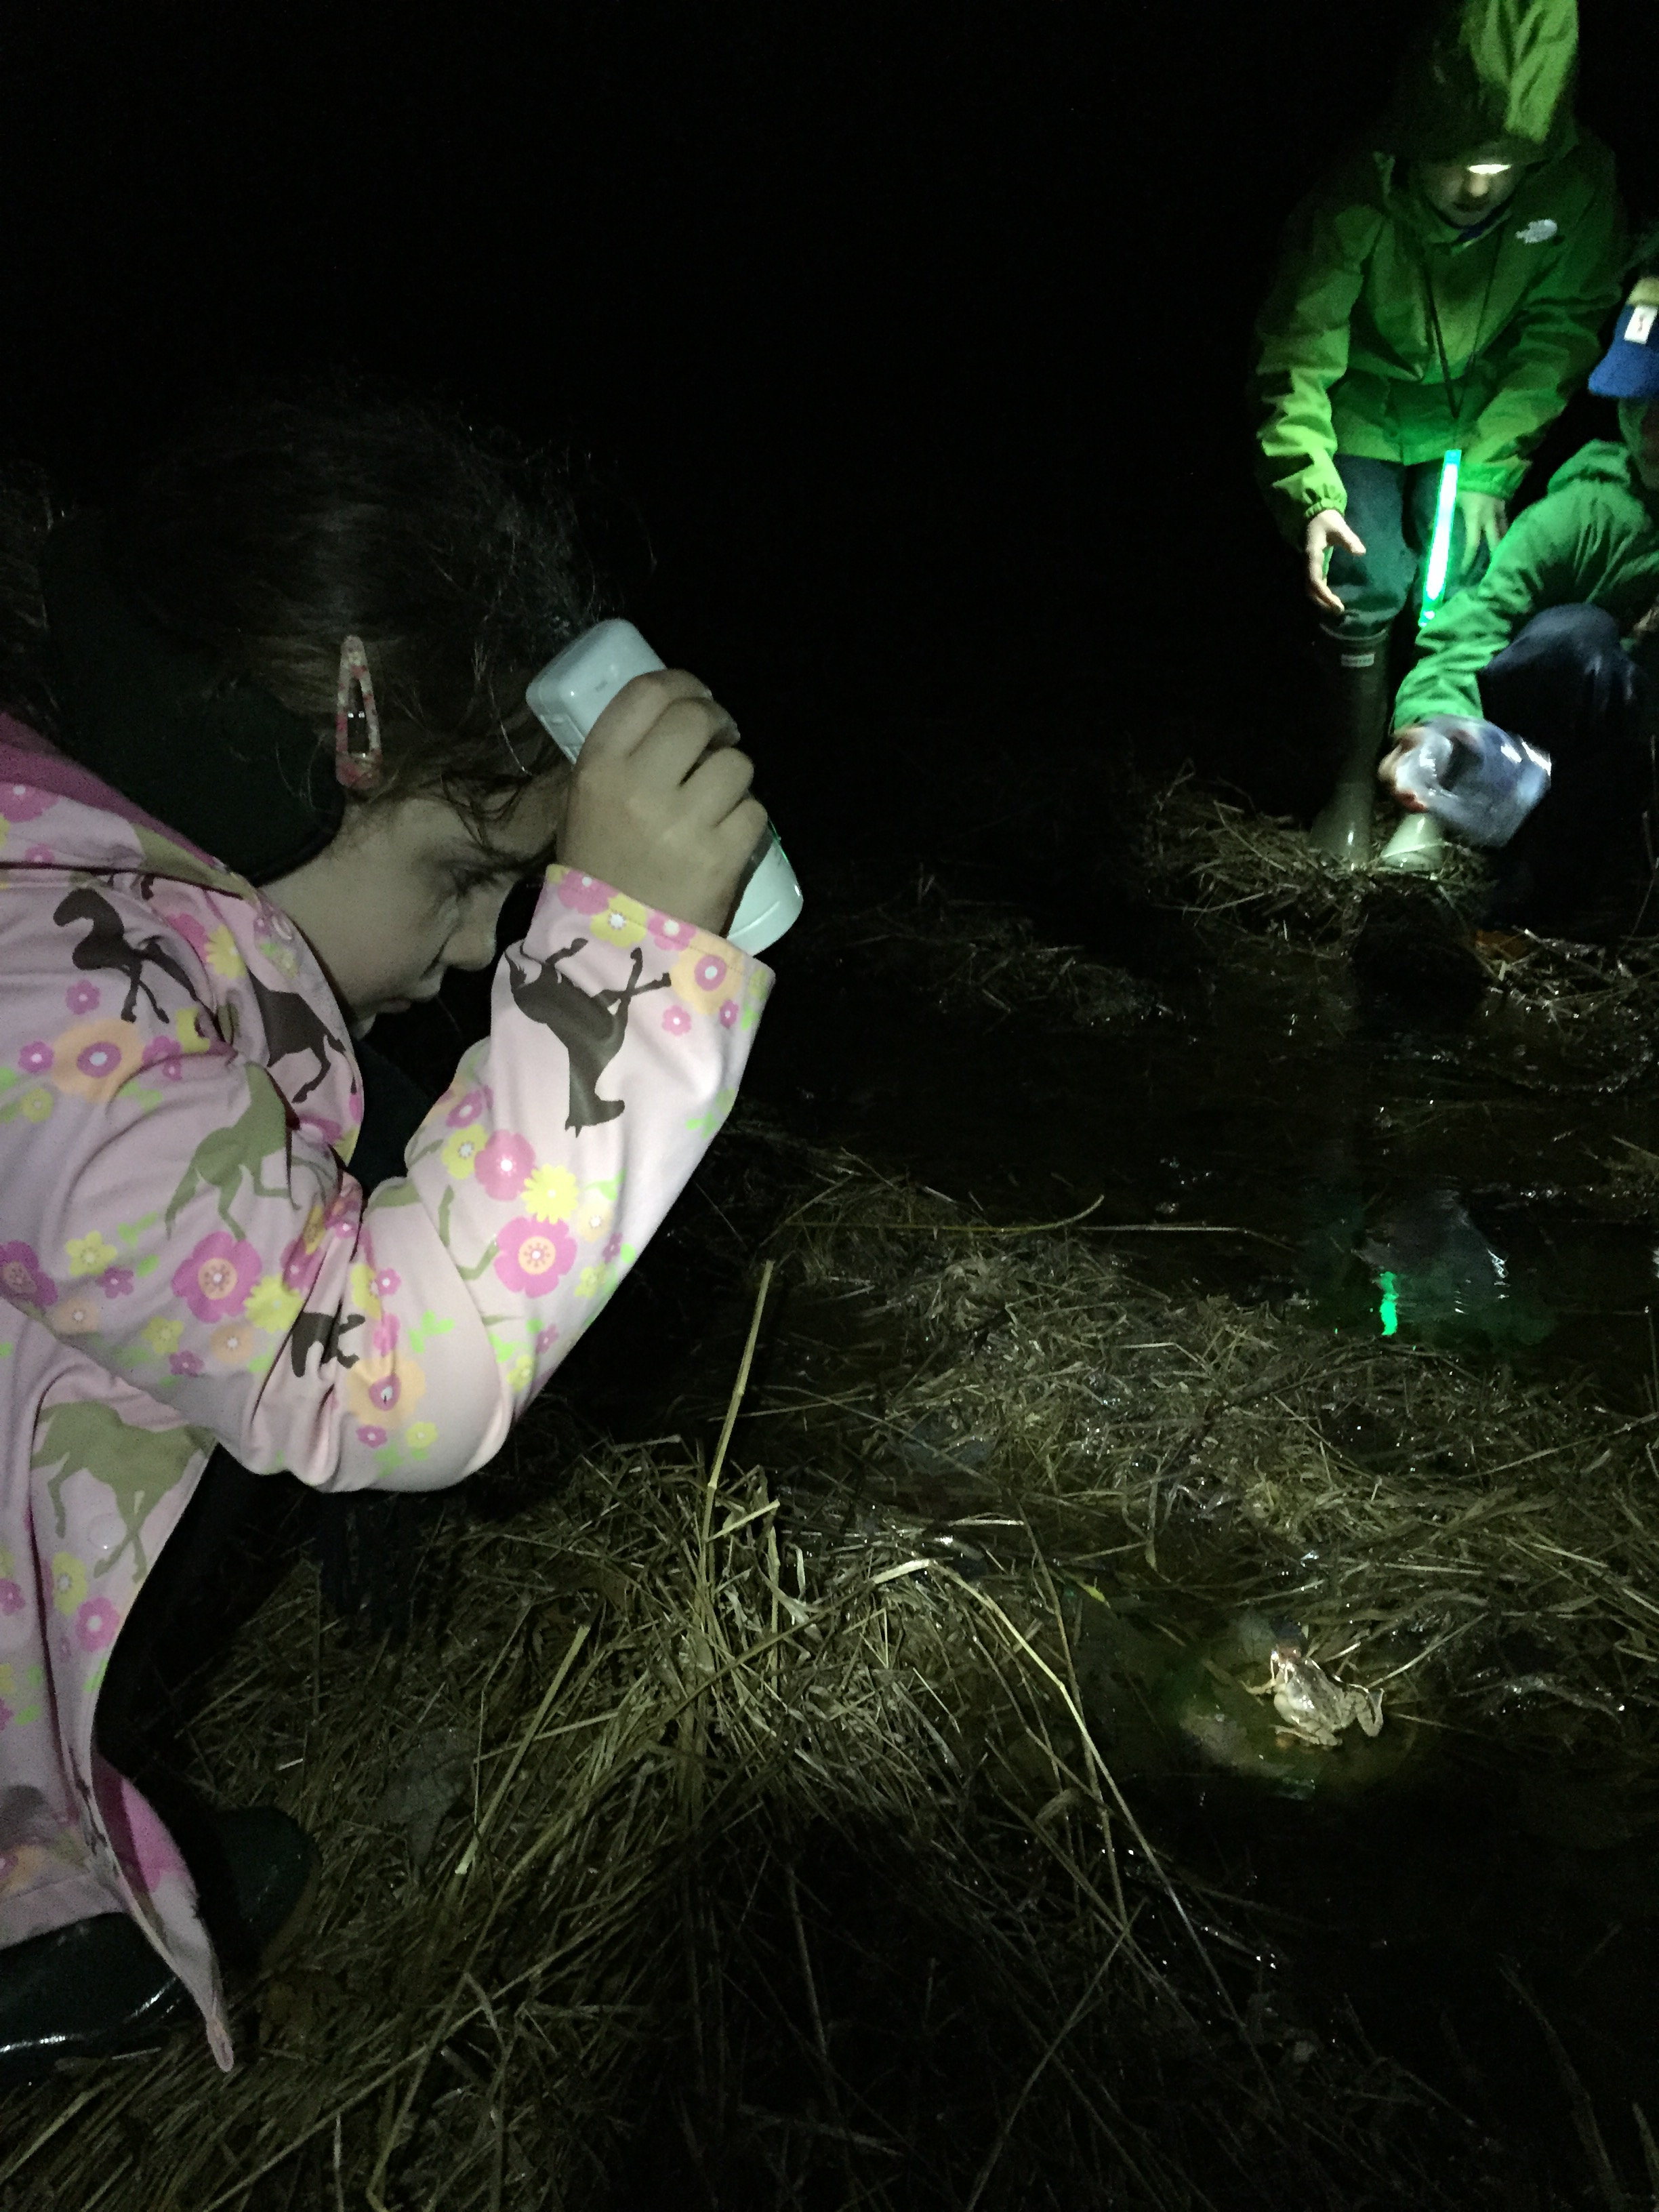 A Jr. Birder shines her light on a Wood frog while surveying a vernal pool last March. Photo by Blake Goll